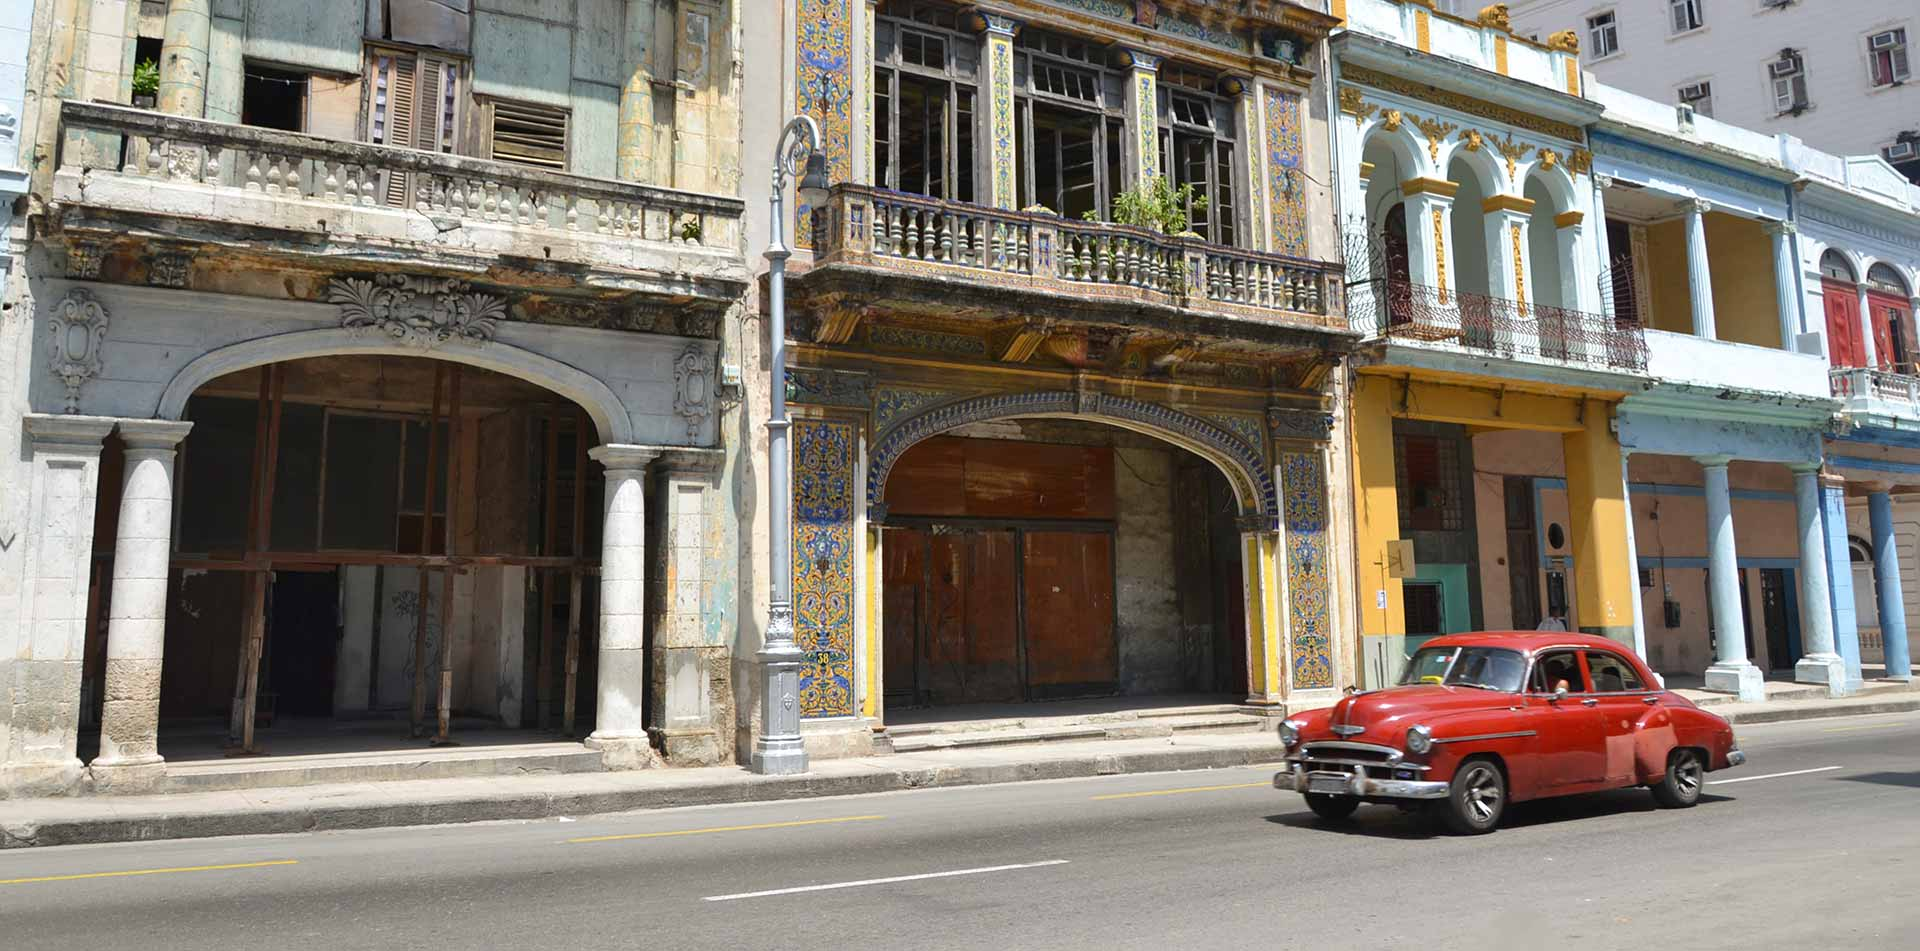 North America Caribbean Cuba Havana old city street red classic car colorful - luxury vacation destinations